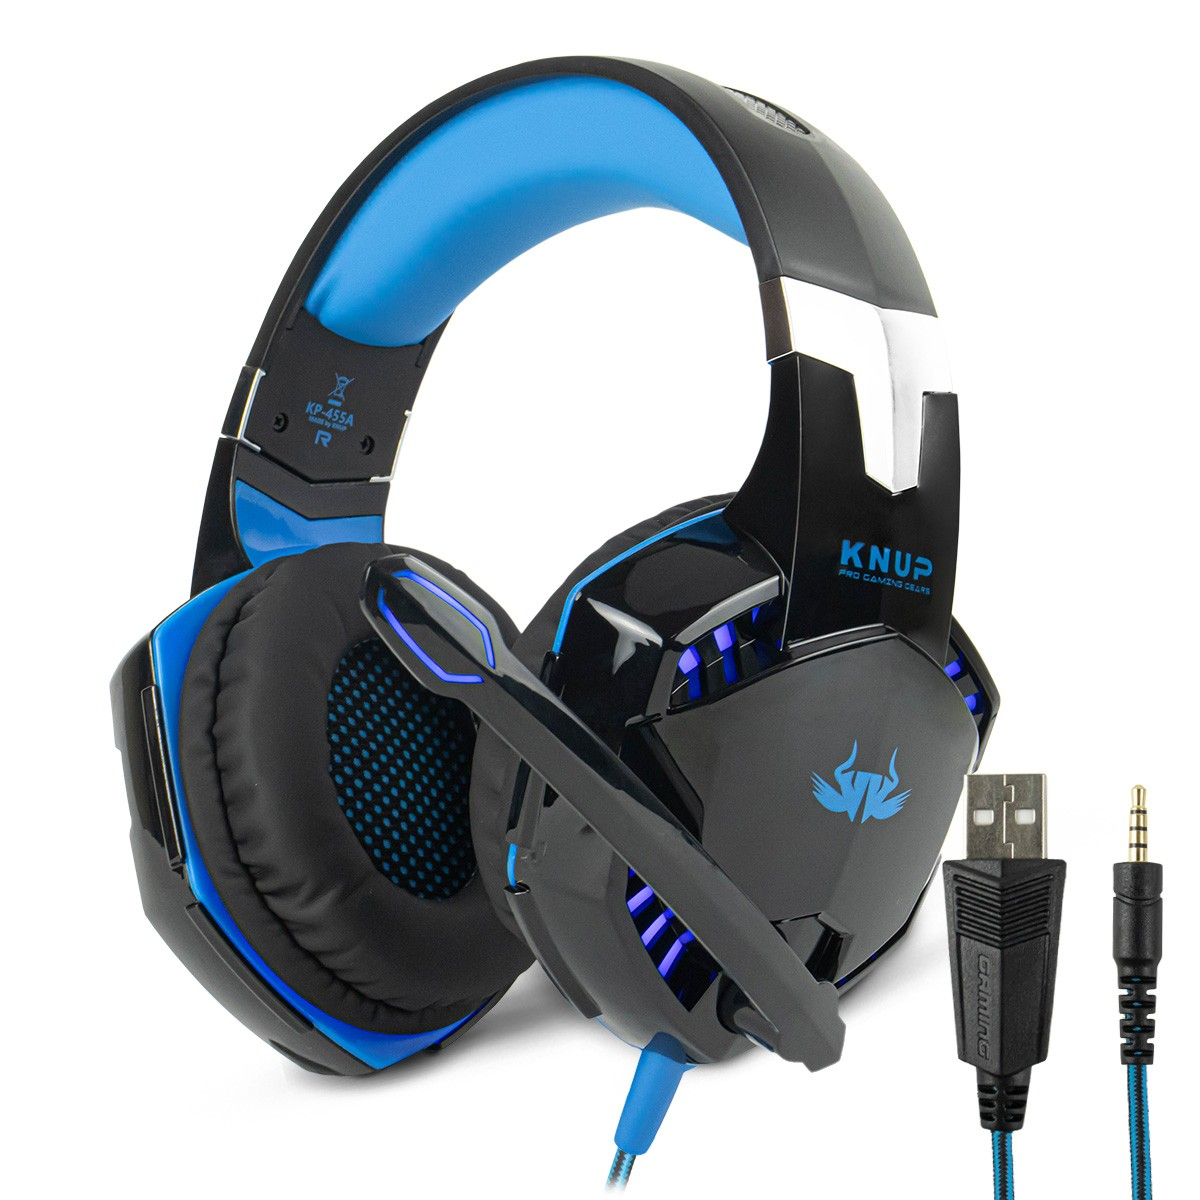 Headset Gamer Surround LED com Microfone Retrátil Cabo P3 + Adaptador p/ P2 Knup KP-455A